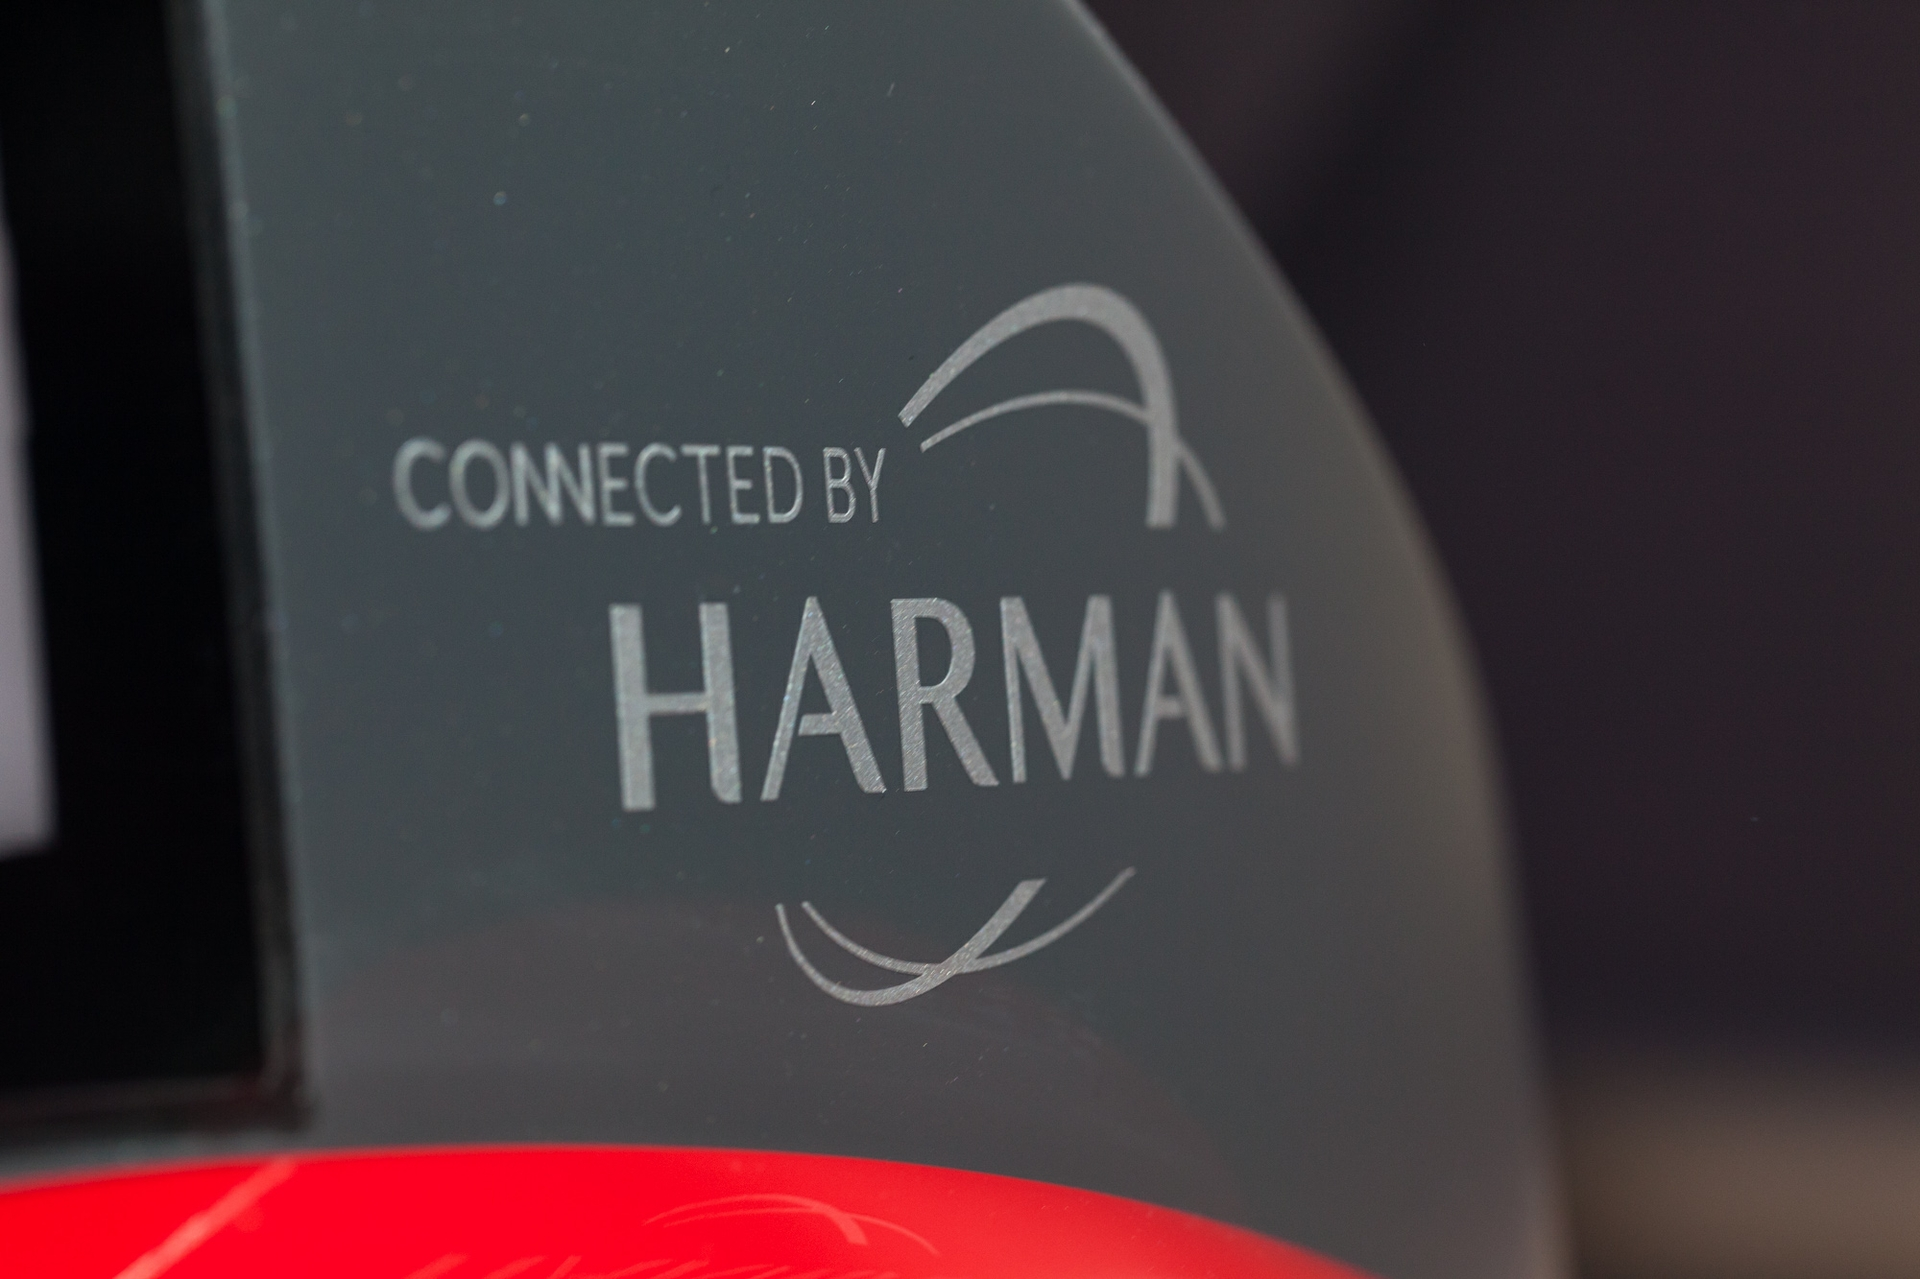 Rinspeed Connected by HARMAN